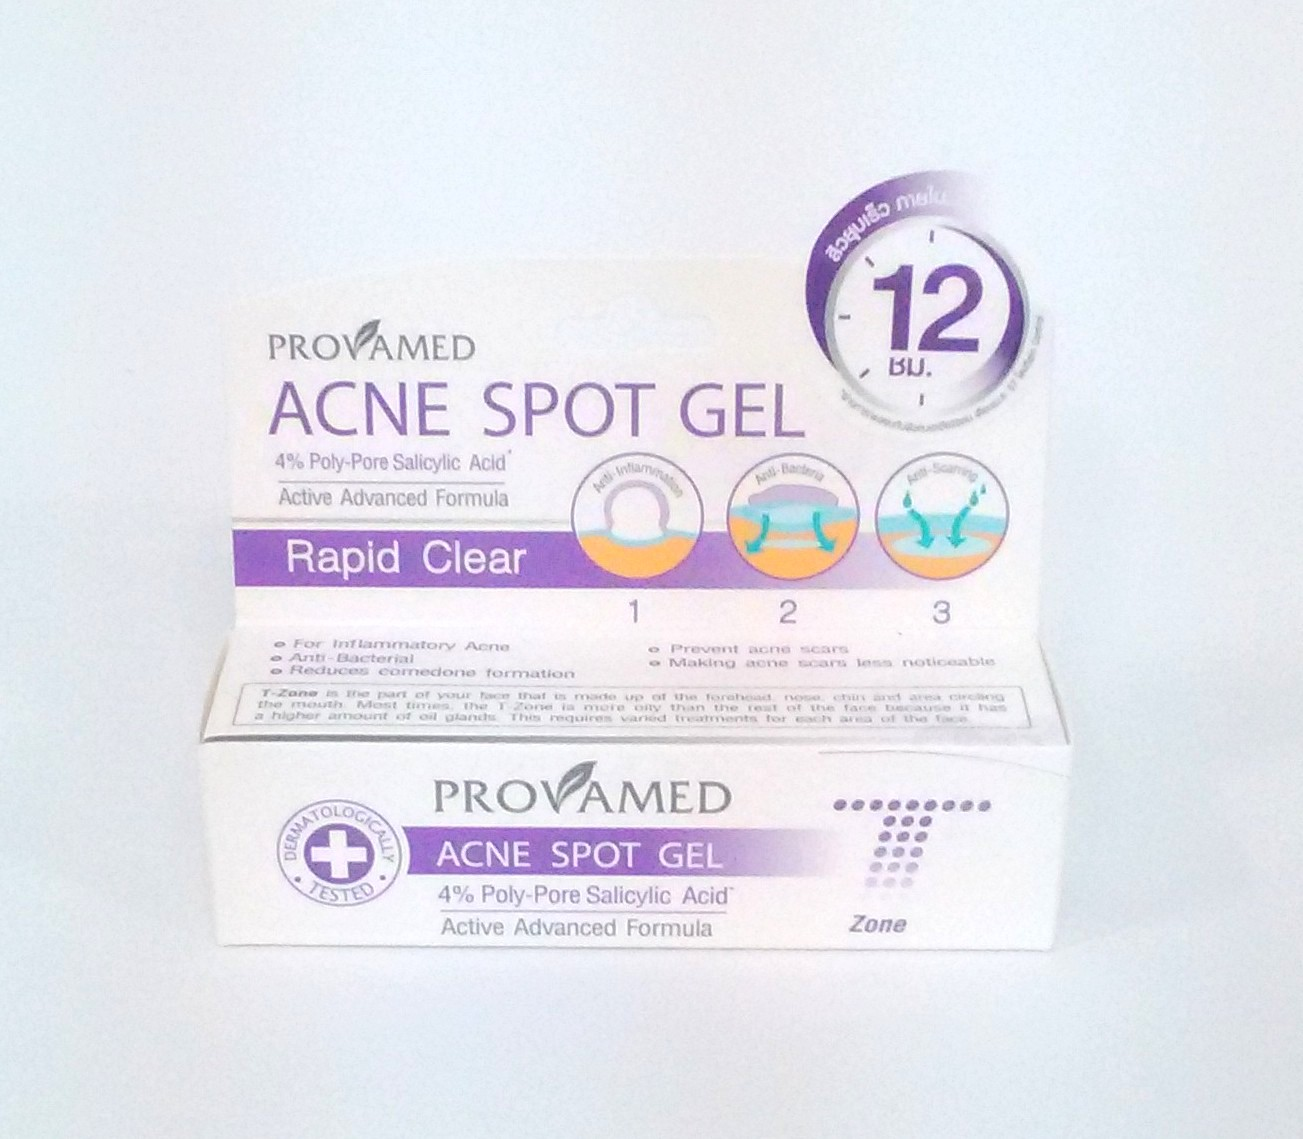 PROVAMED ACNE SPOT GEL Rapid Clear 2個セット